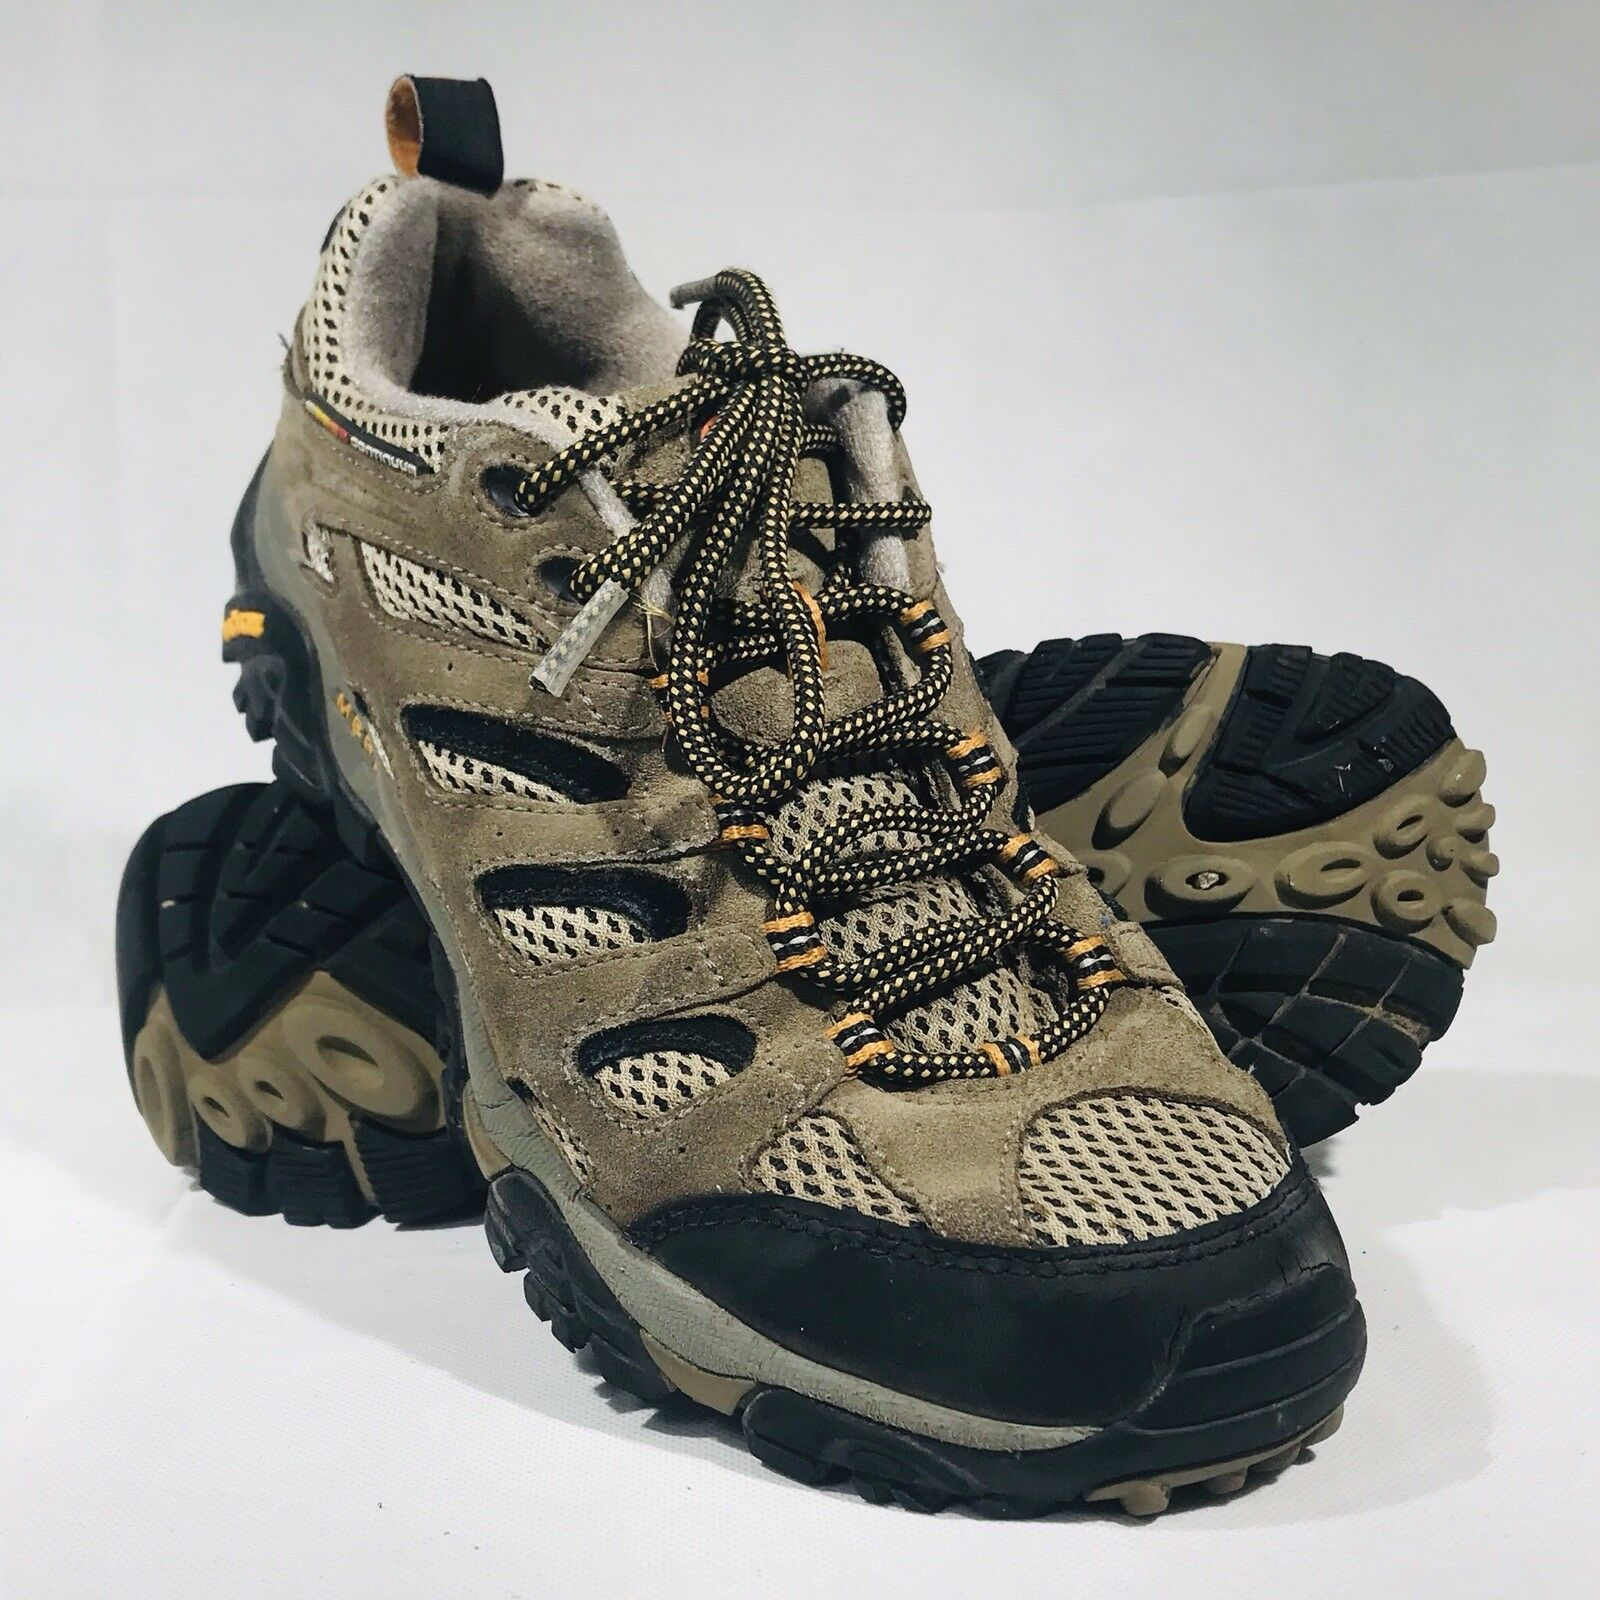 Merrell Continuum Vibram Mens Waterproof Hiking shoes In Walnut Size 8 [ZZ7]